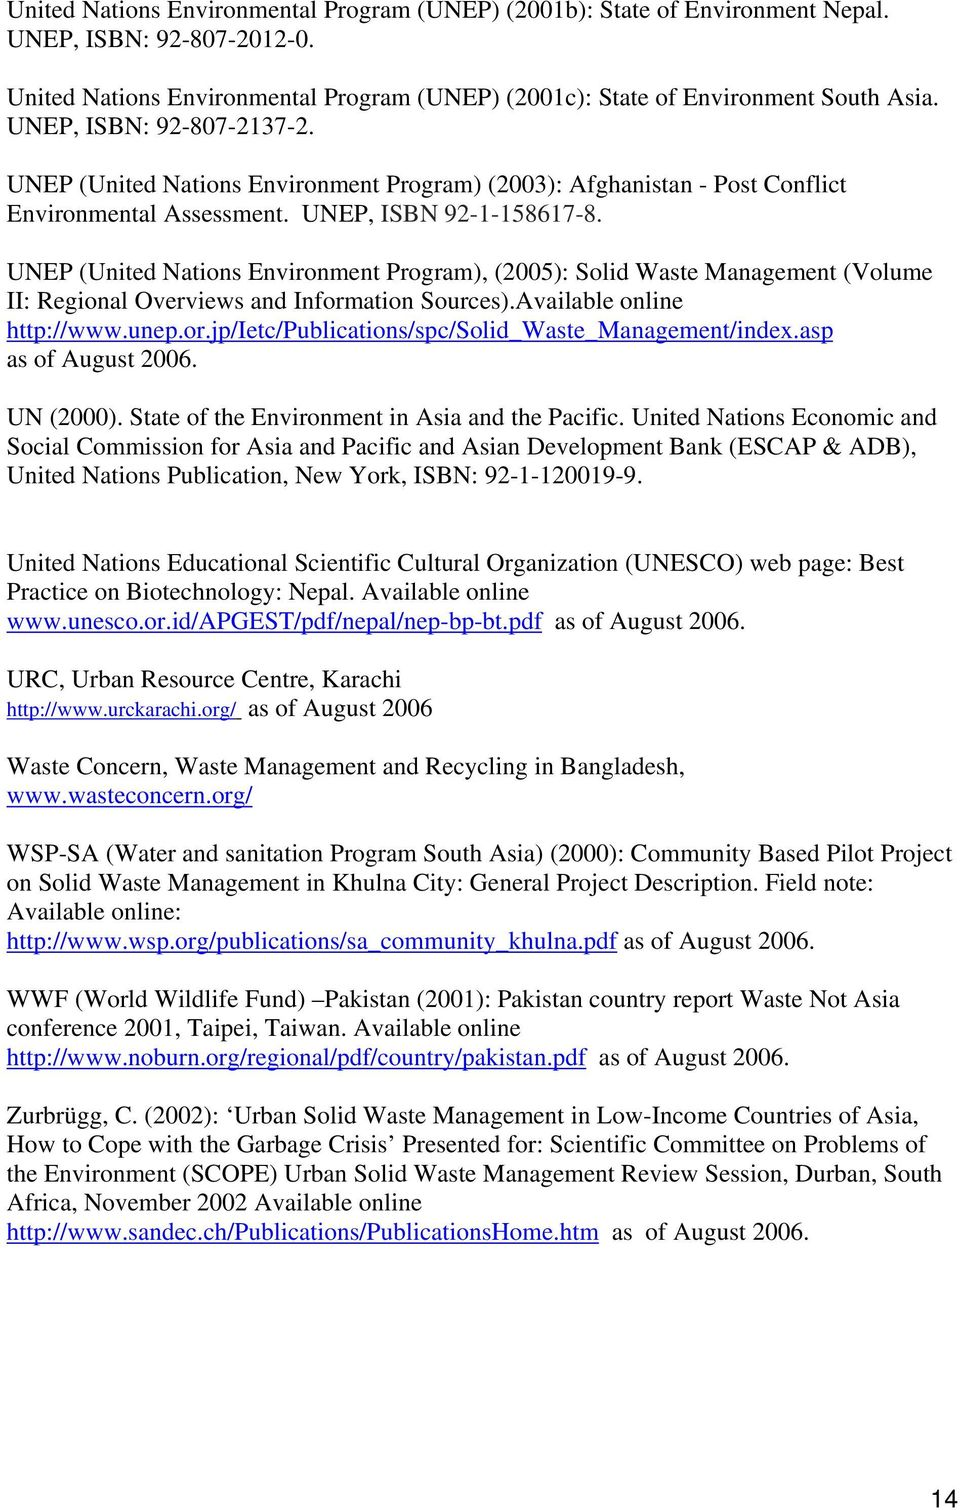 UNEP (United Nations Environment Program), (2005): Solid Waste Management (Volume II: Regional Overviews and Information Sources).Available online http://www.unep.or.jp/ietc/publications/spc/solid_waste_management/index.